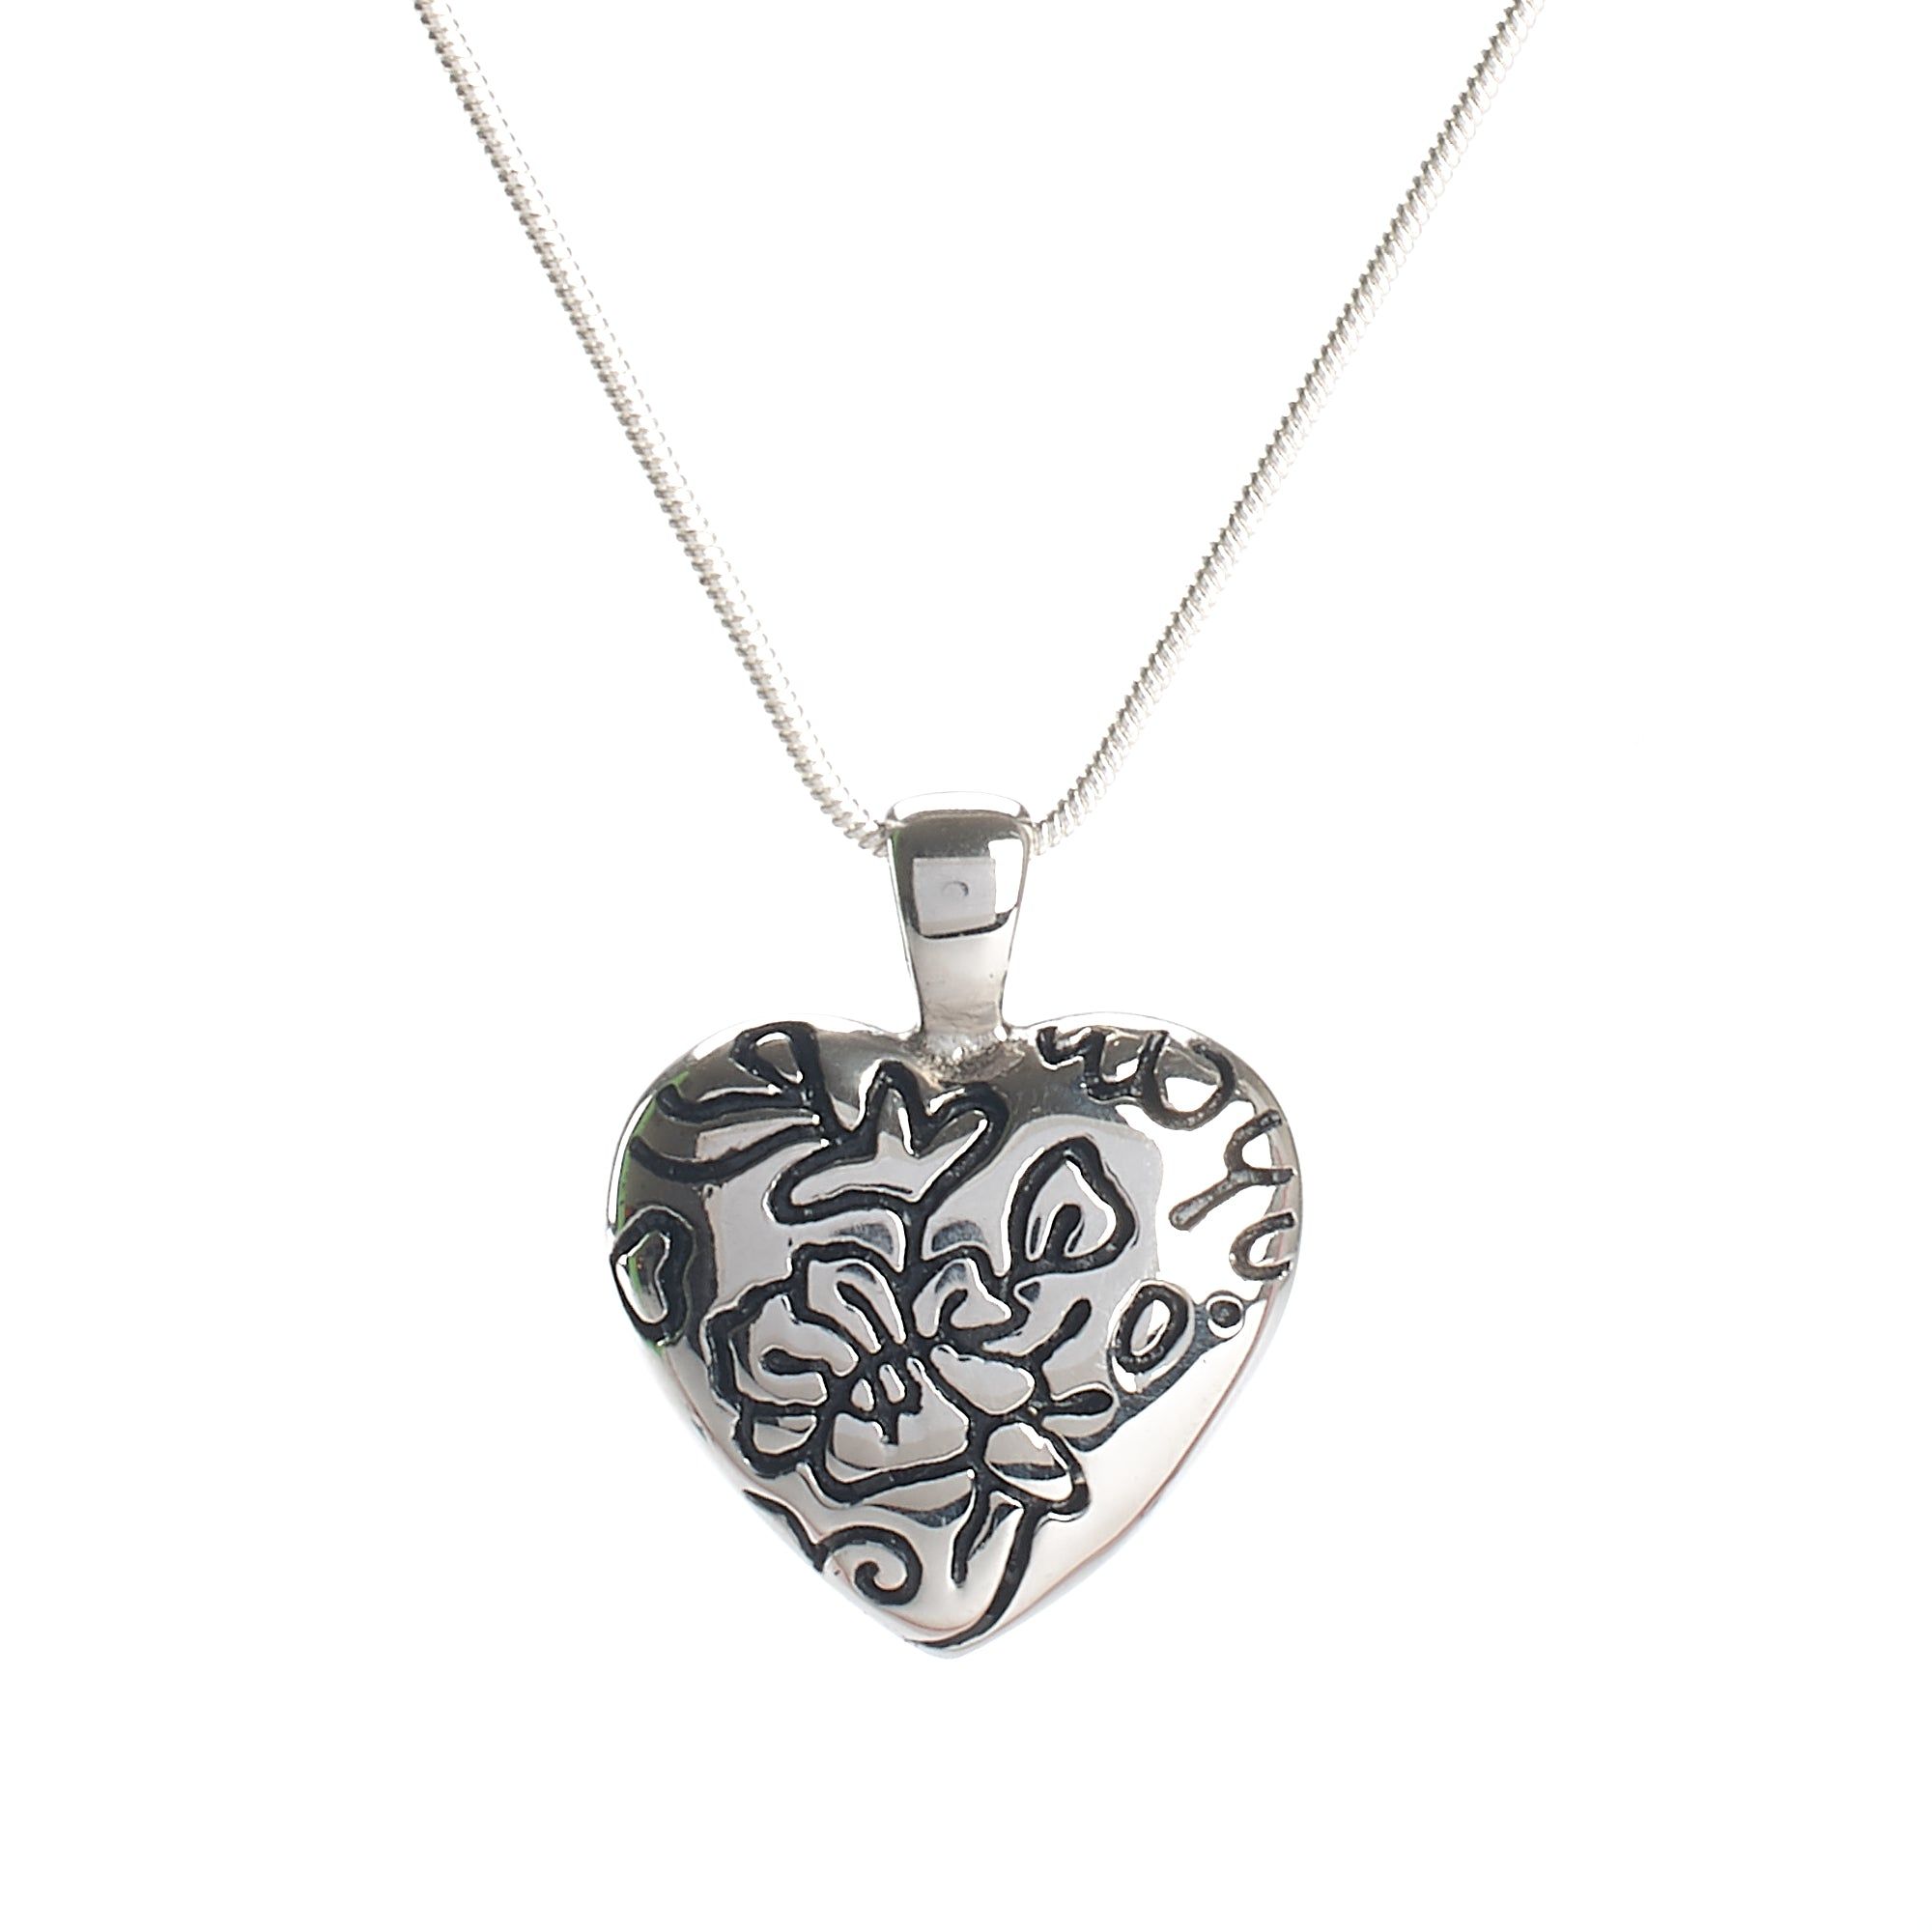 Cremation Pendant - Silver Heart with Black Floral Filigree